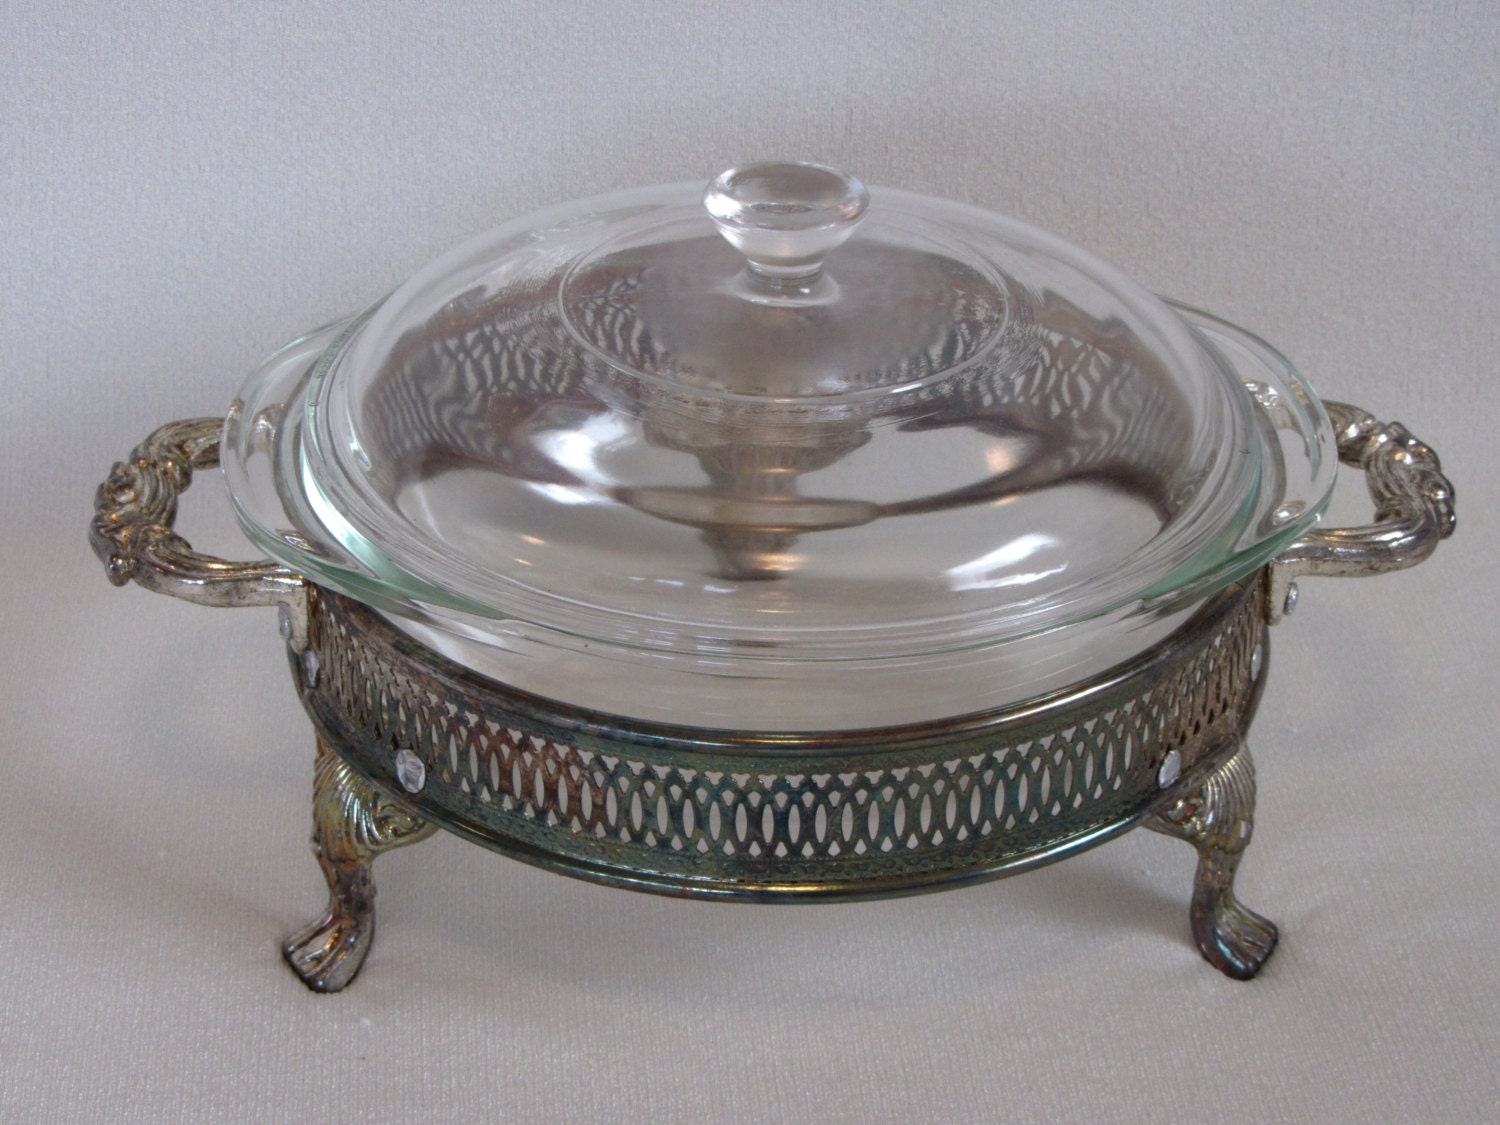 Silverplate Casserole Stand With Pyrex Glass Insert